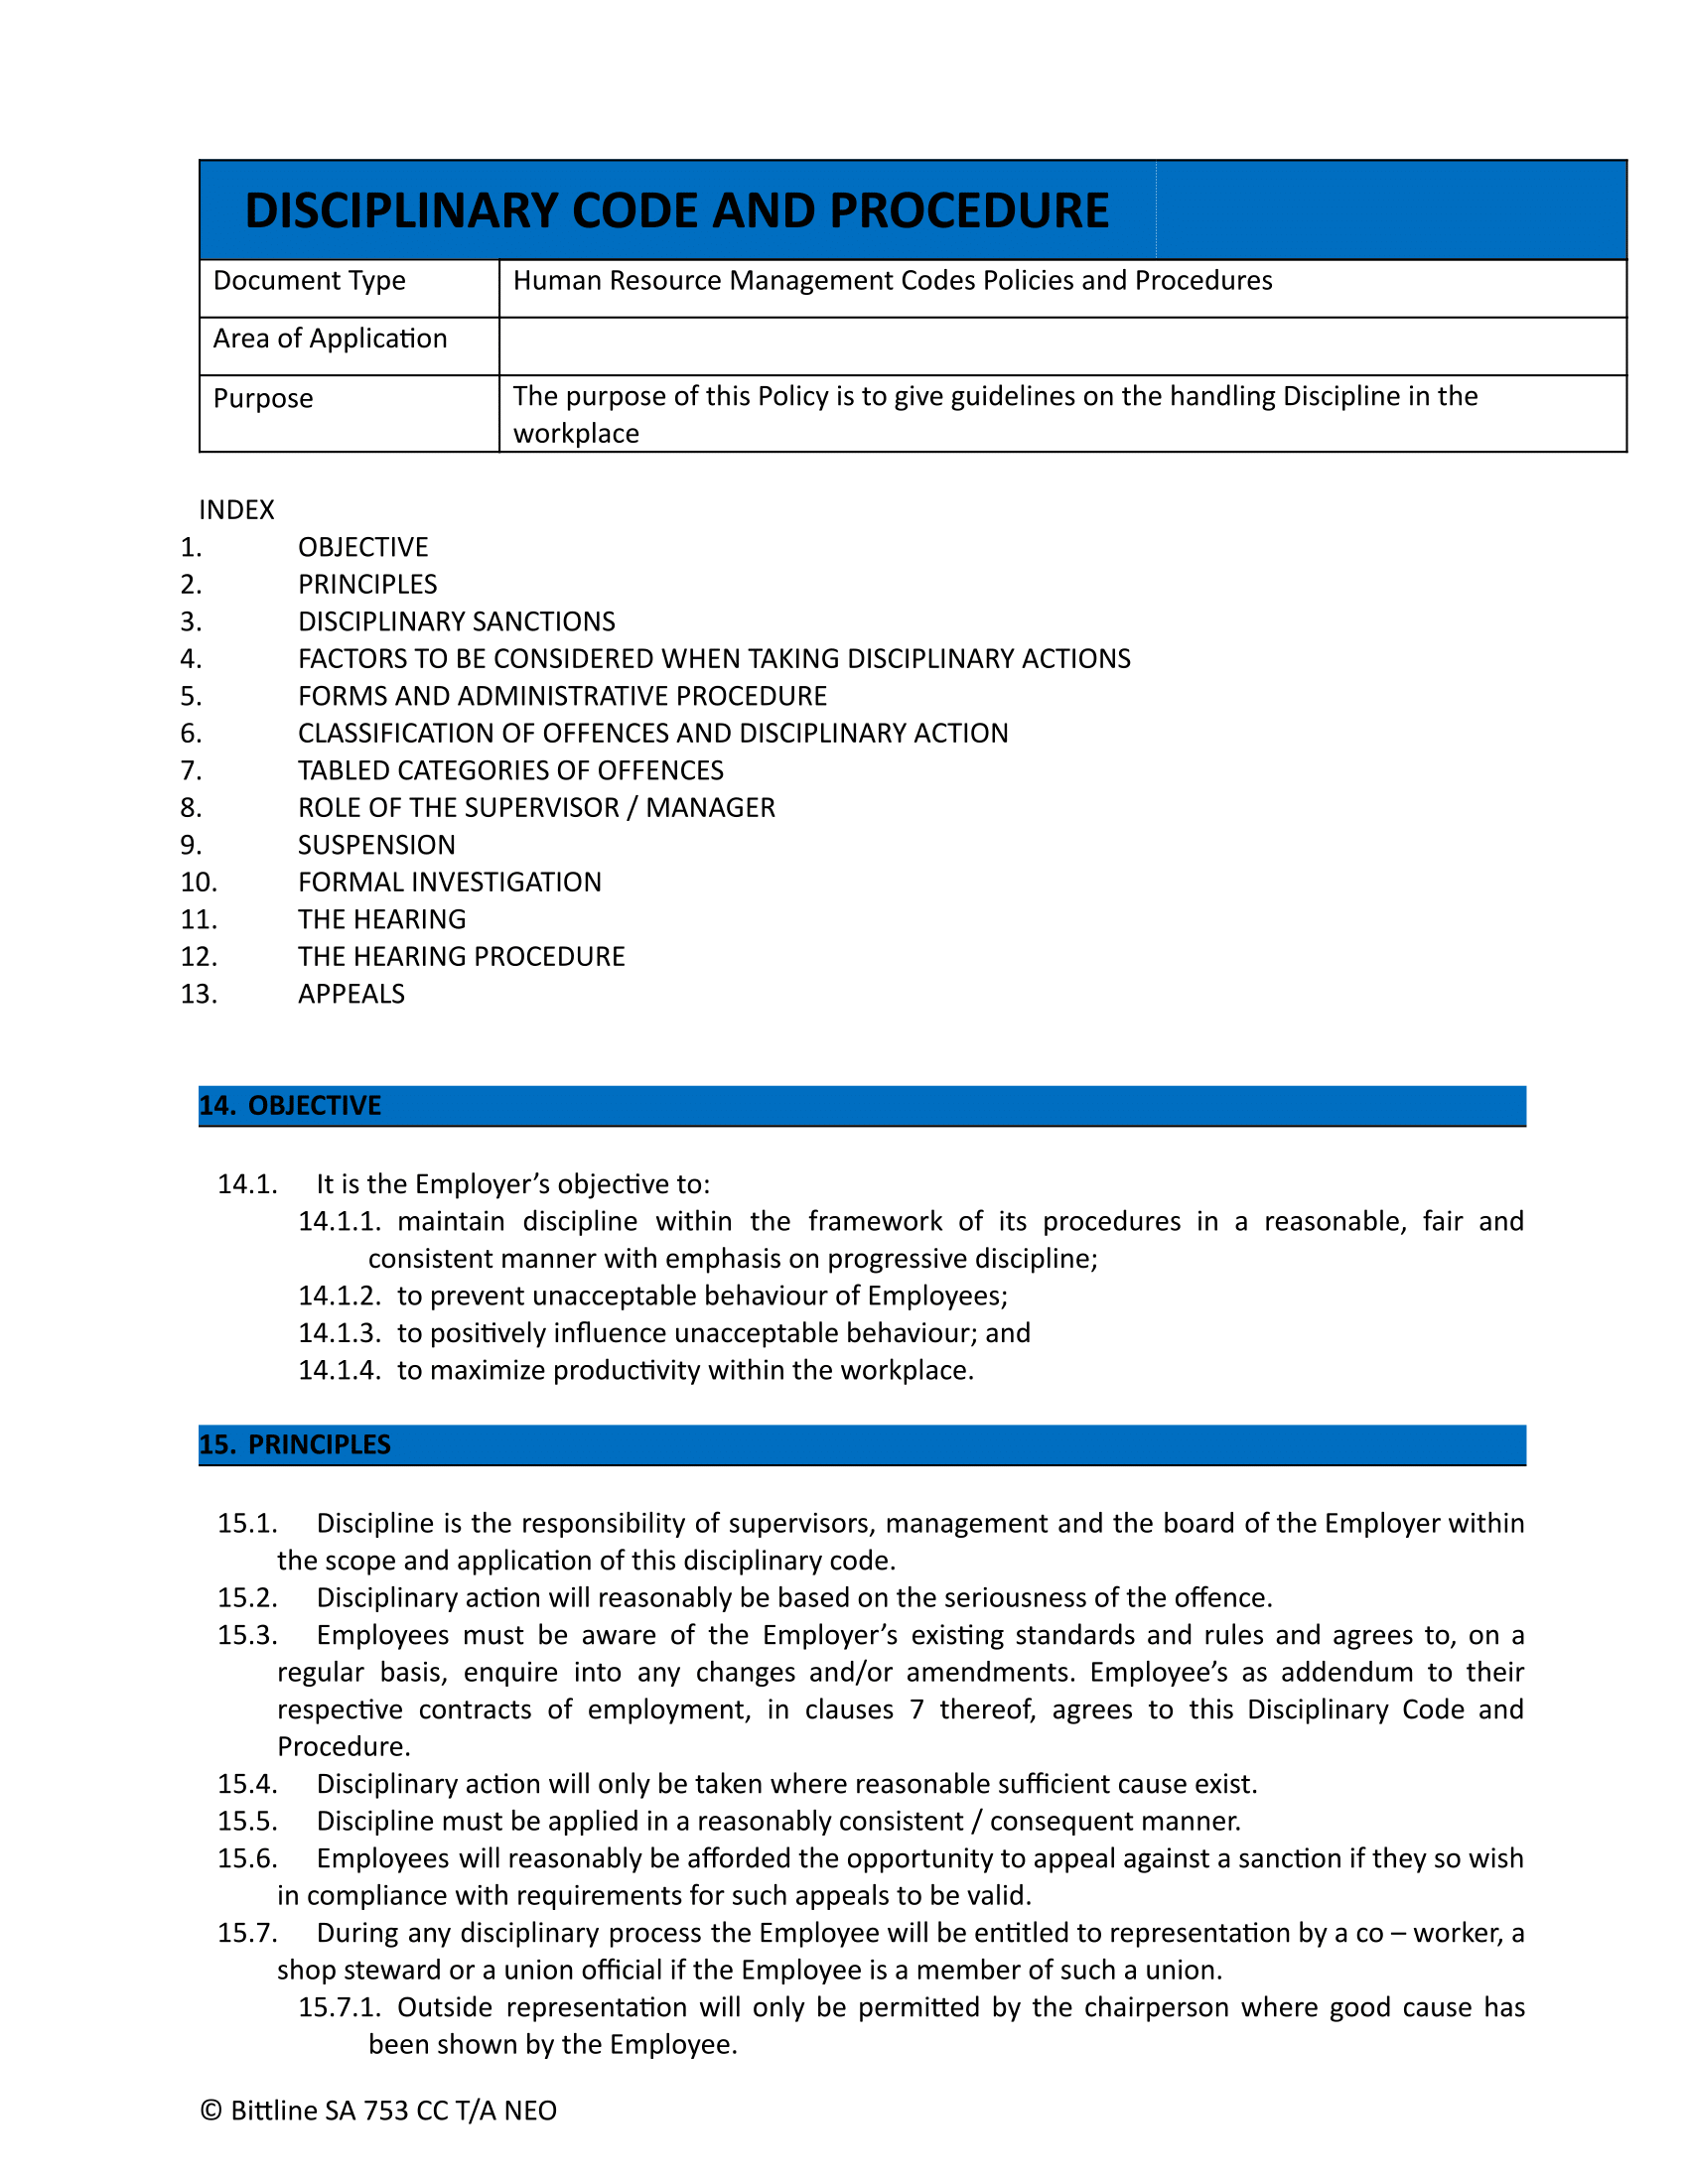 CP-001-DISCIPLINARY-CODE-AND-PROCEDURE-2018 - Google Docs-1